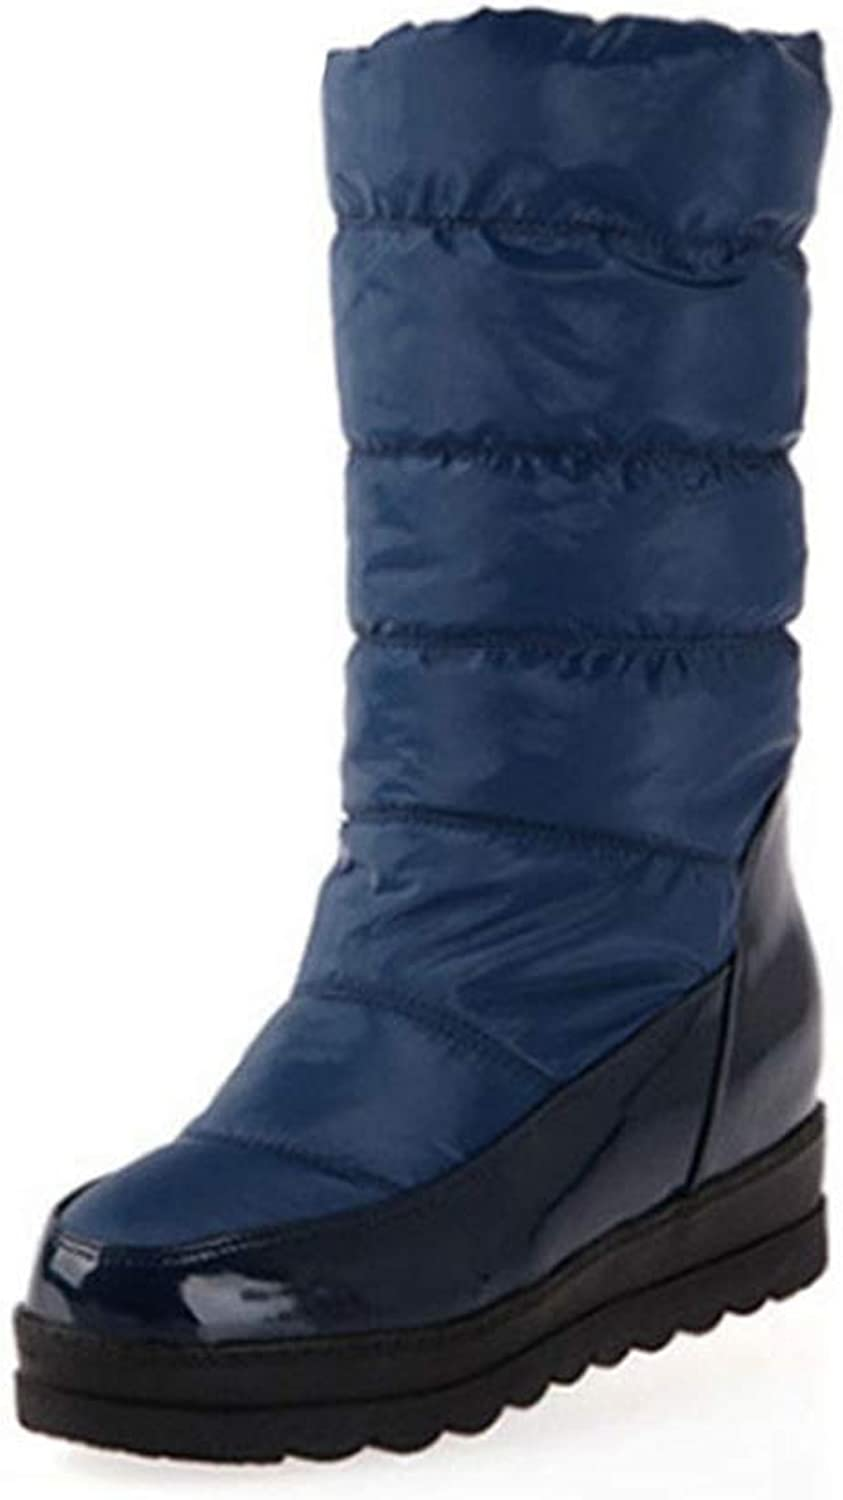 9e6c90aacfb13 Women Snow Boot Winter Ankle Warm Boot Round Toe Platform Waterproof ...